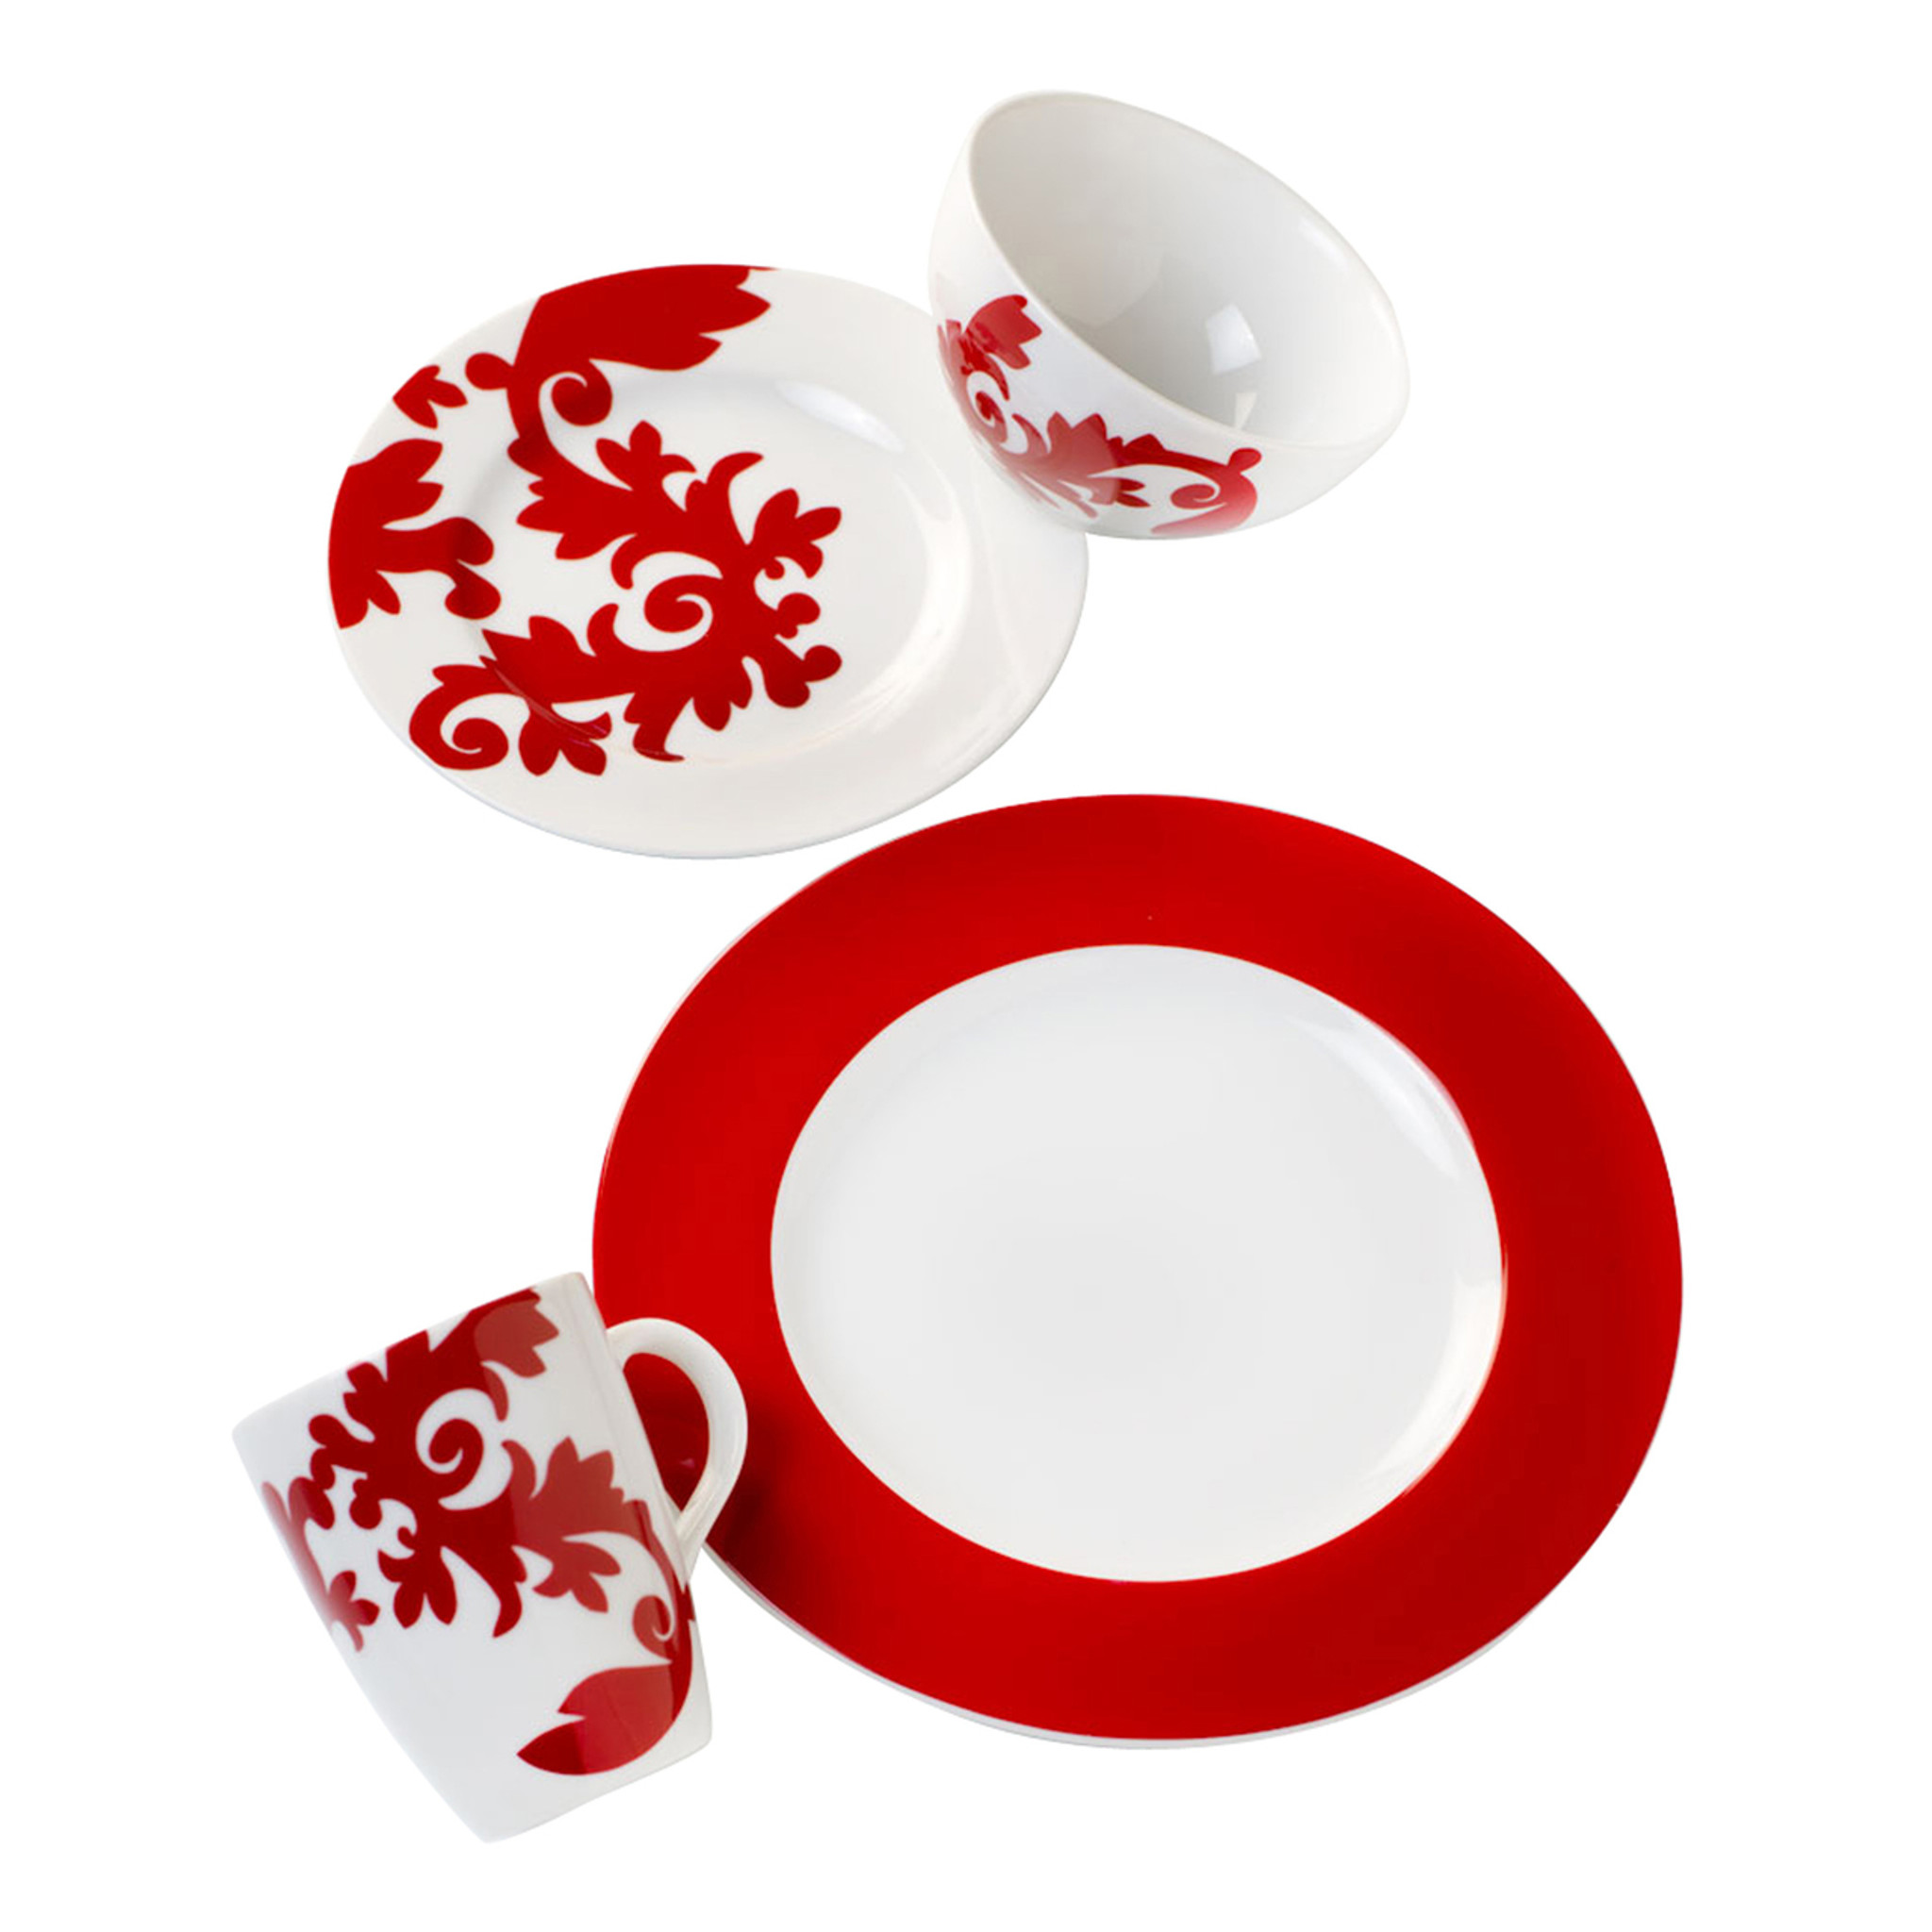 four pieces of red and white dinnerware featuring a damask design Calarama 16 Piece Dinnerware Set, Service for 4